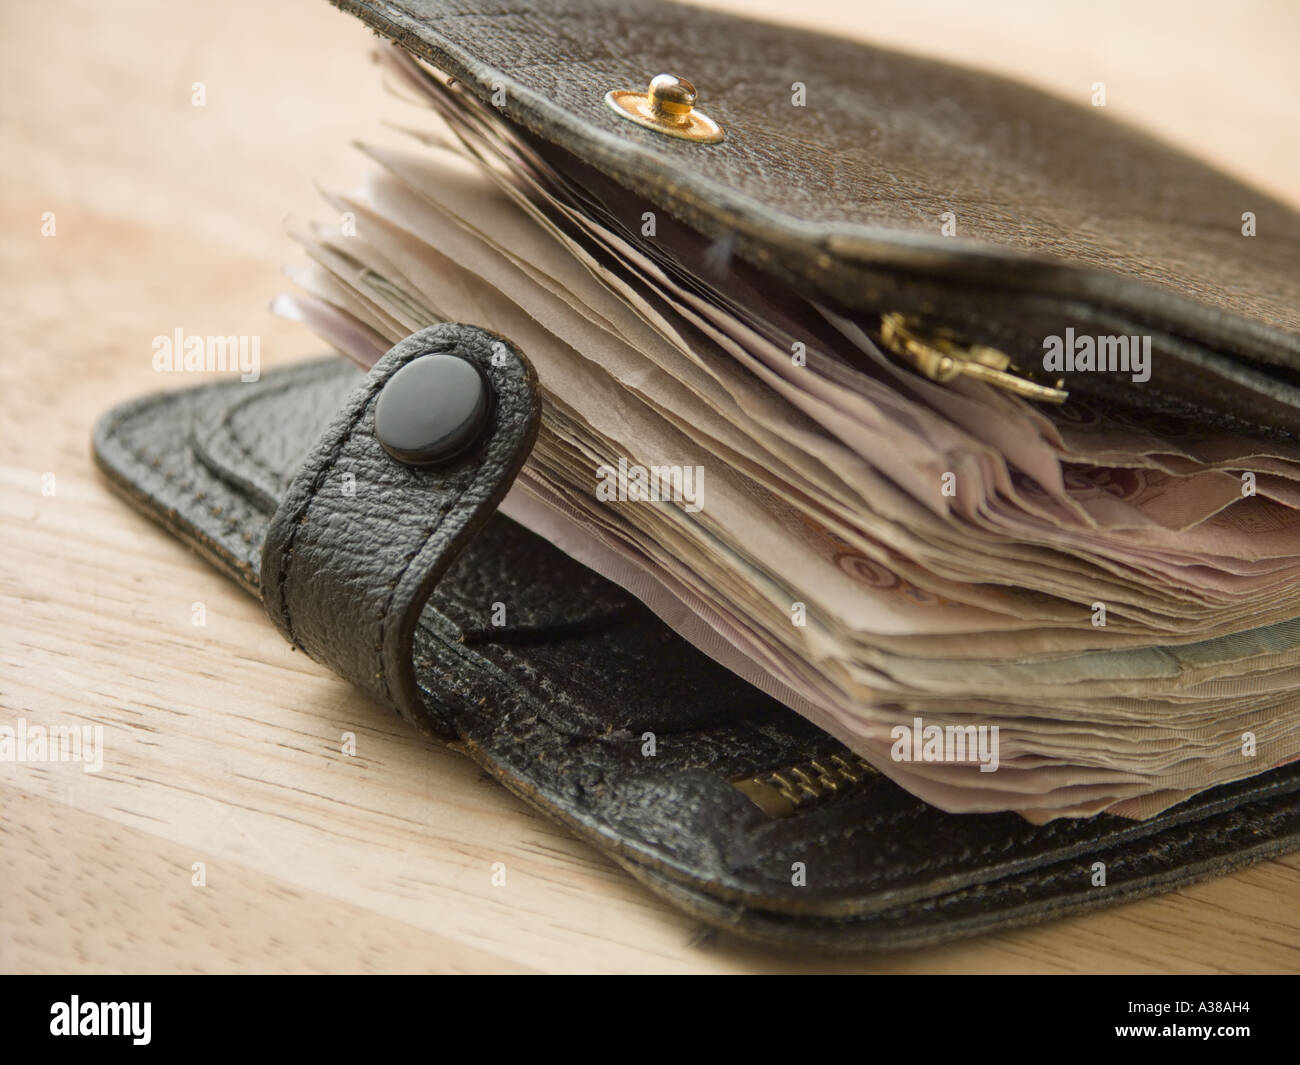 A wad of money in a black leather wallet - Stock Image